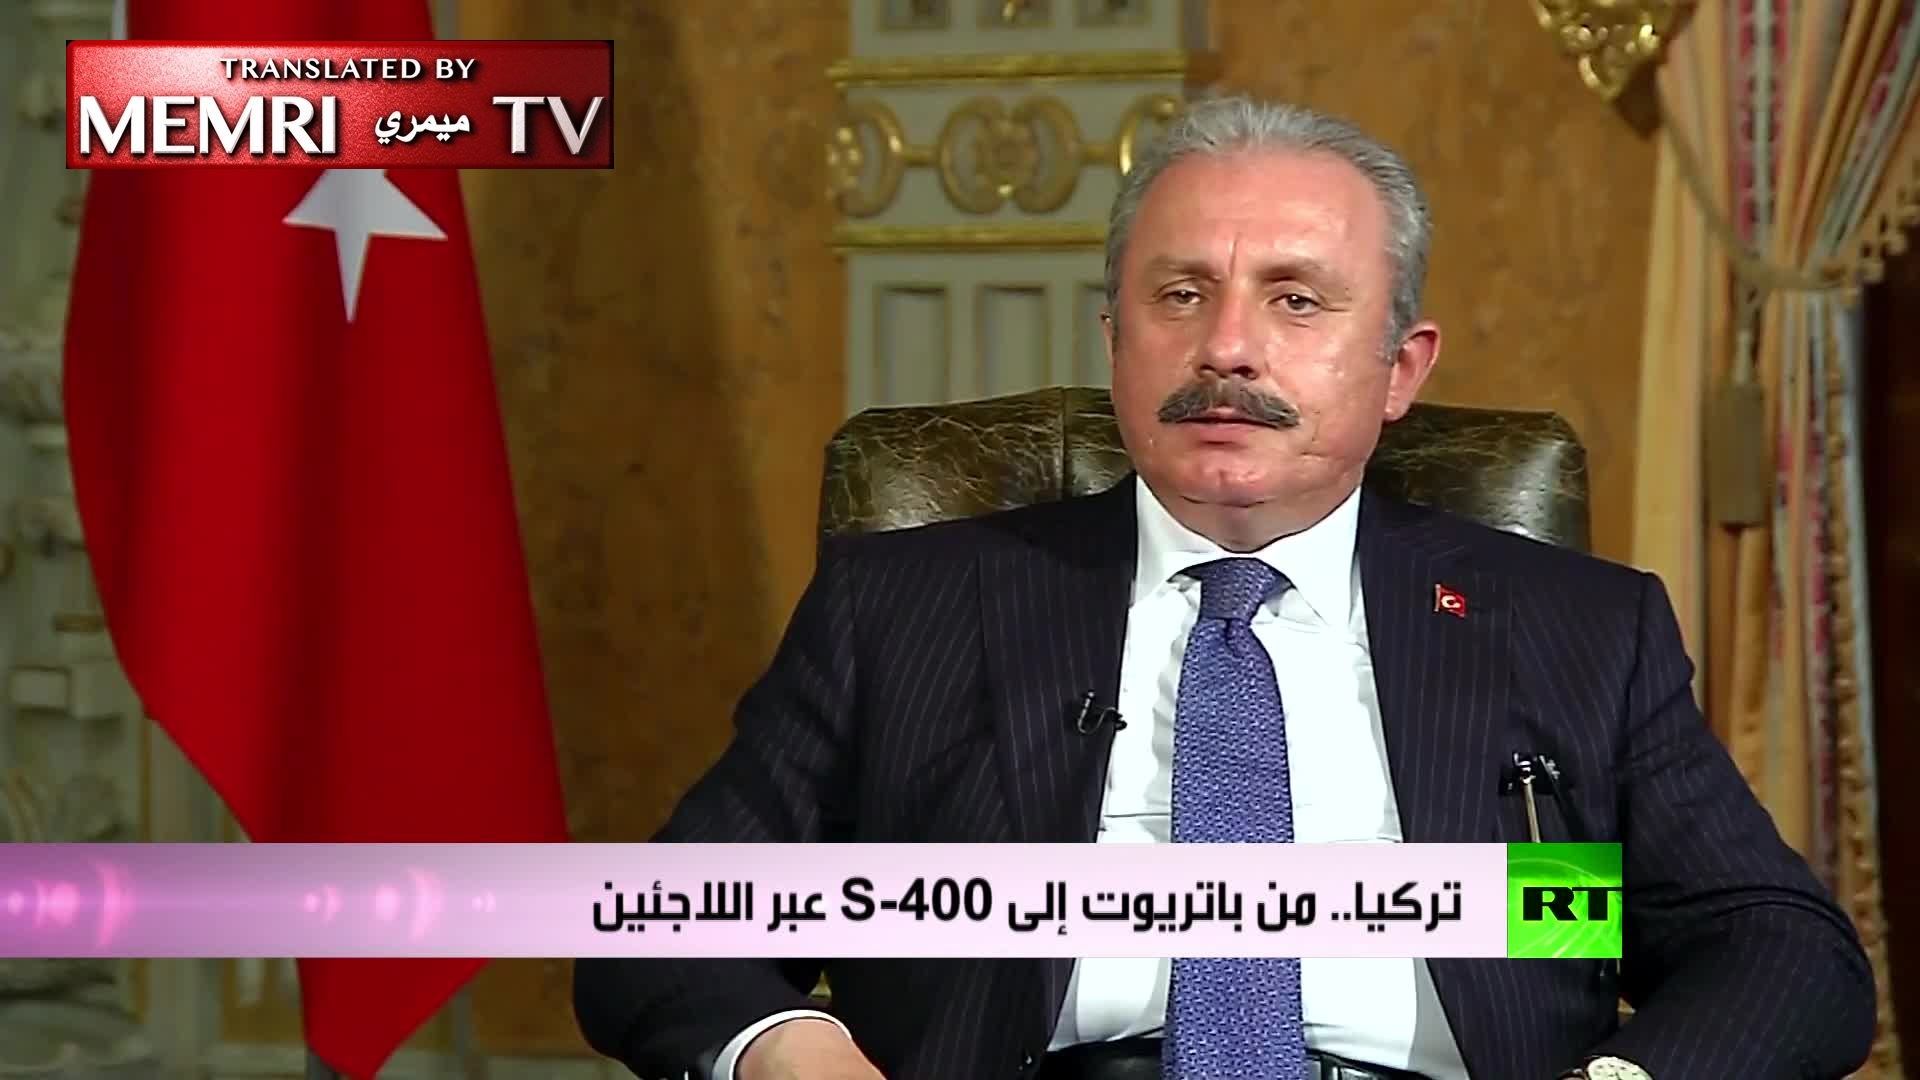 Turkish Parliament Speaker Mustafa Şentop: Any U.S. Attempt to Prevent Us from Acquiring F-35 Jets Would Impact Relations Catastrophically